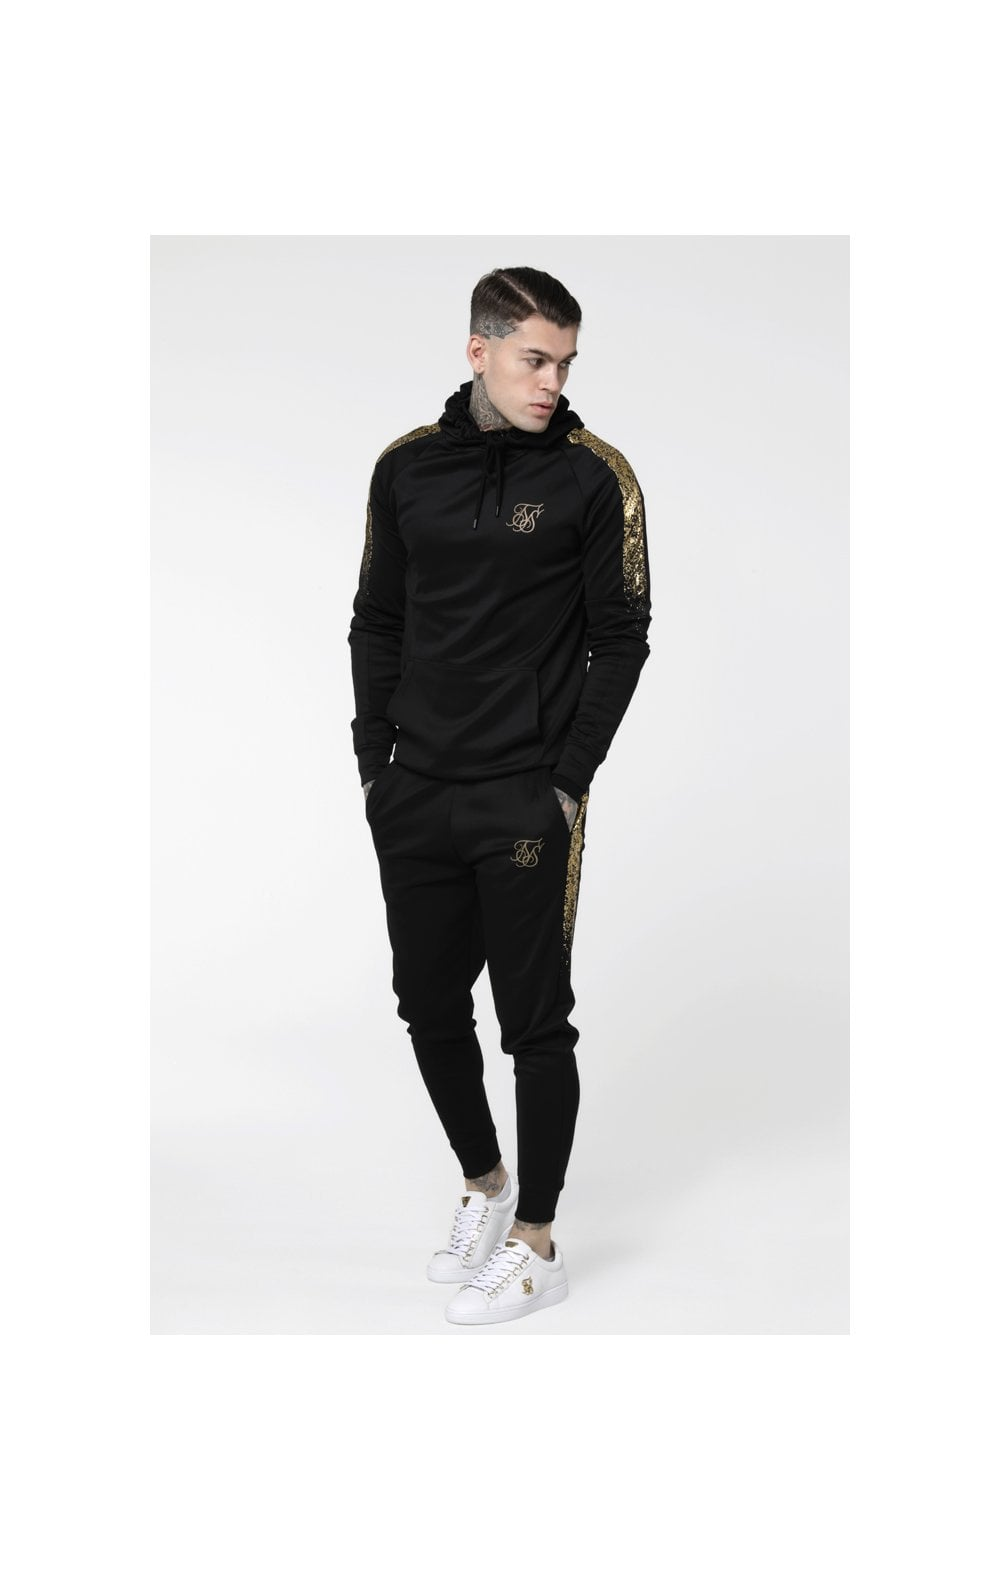 Load image into Gallery viewer, SikSilk Foil Fade Overhead Hoodie - Black & Gold (3)